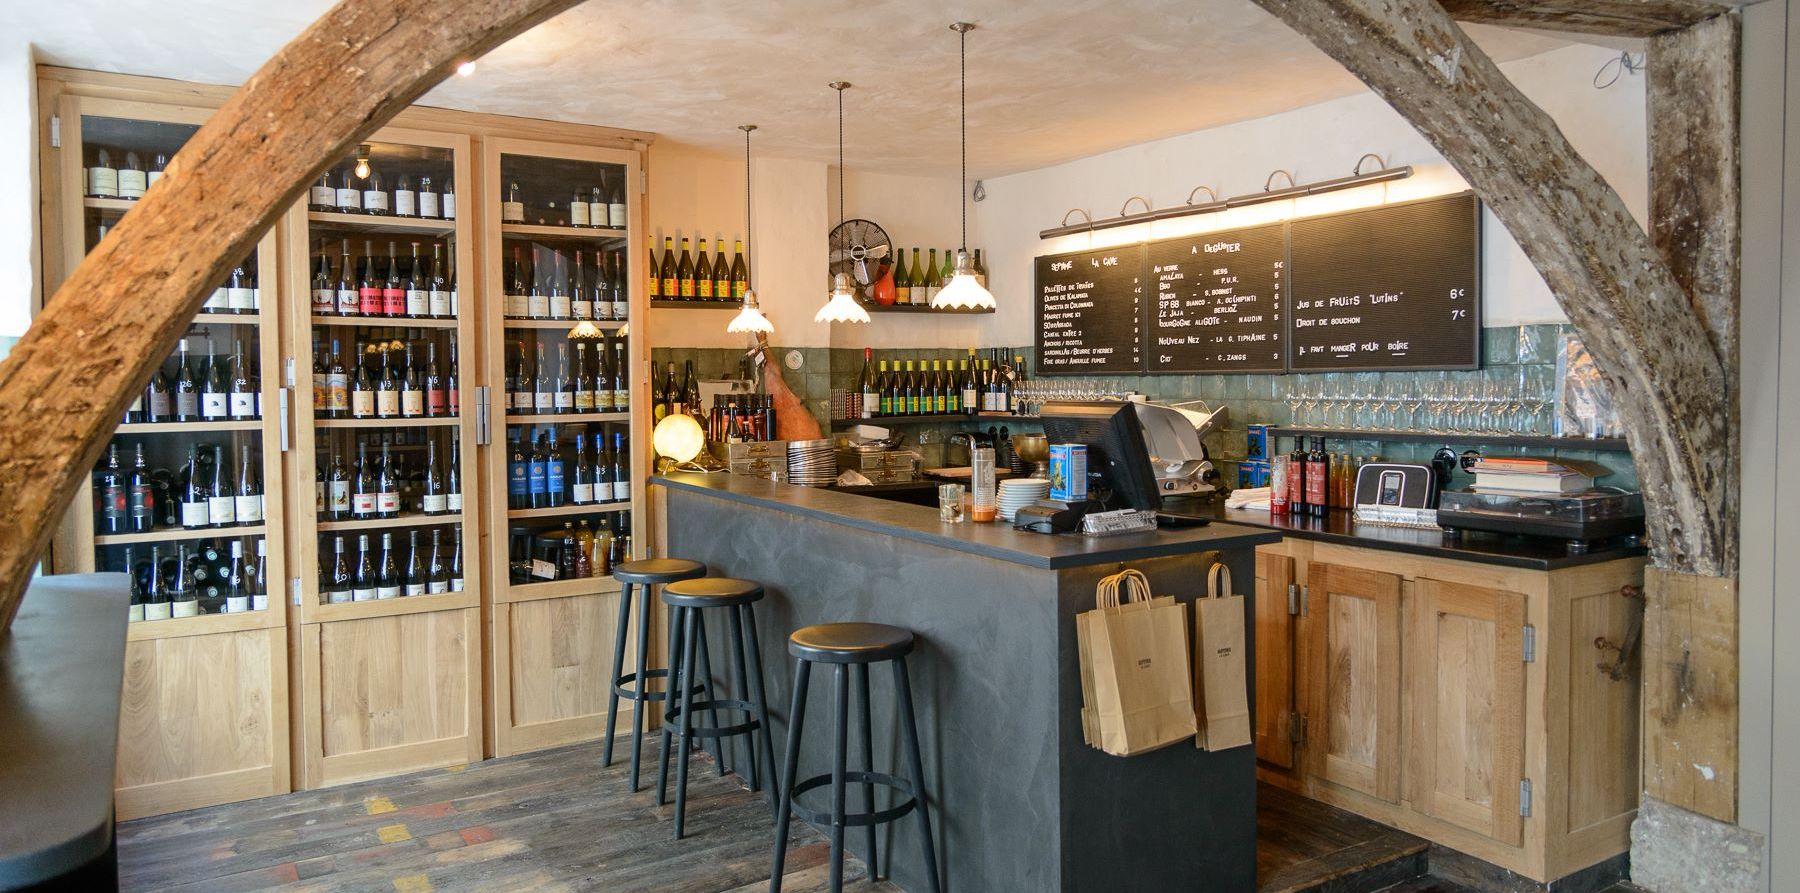 Paris Wine Bars Best Wine Bars in Europe